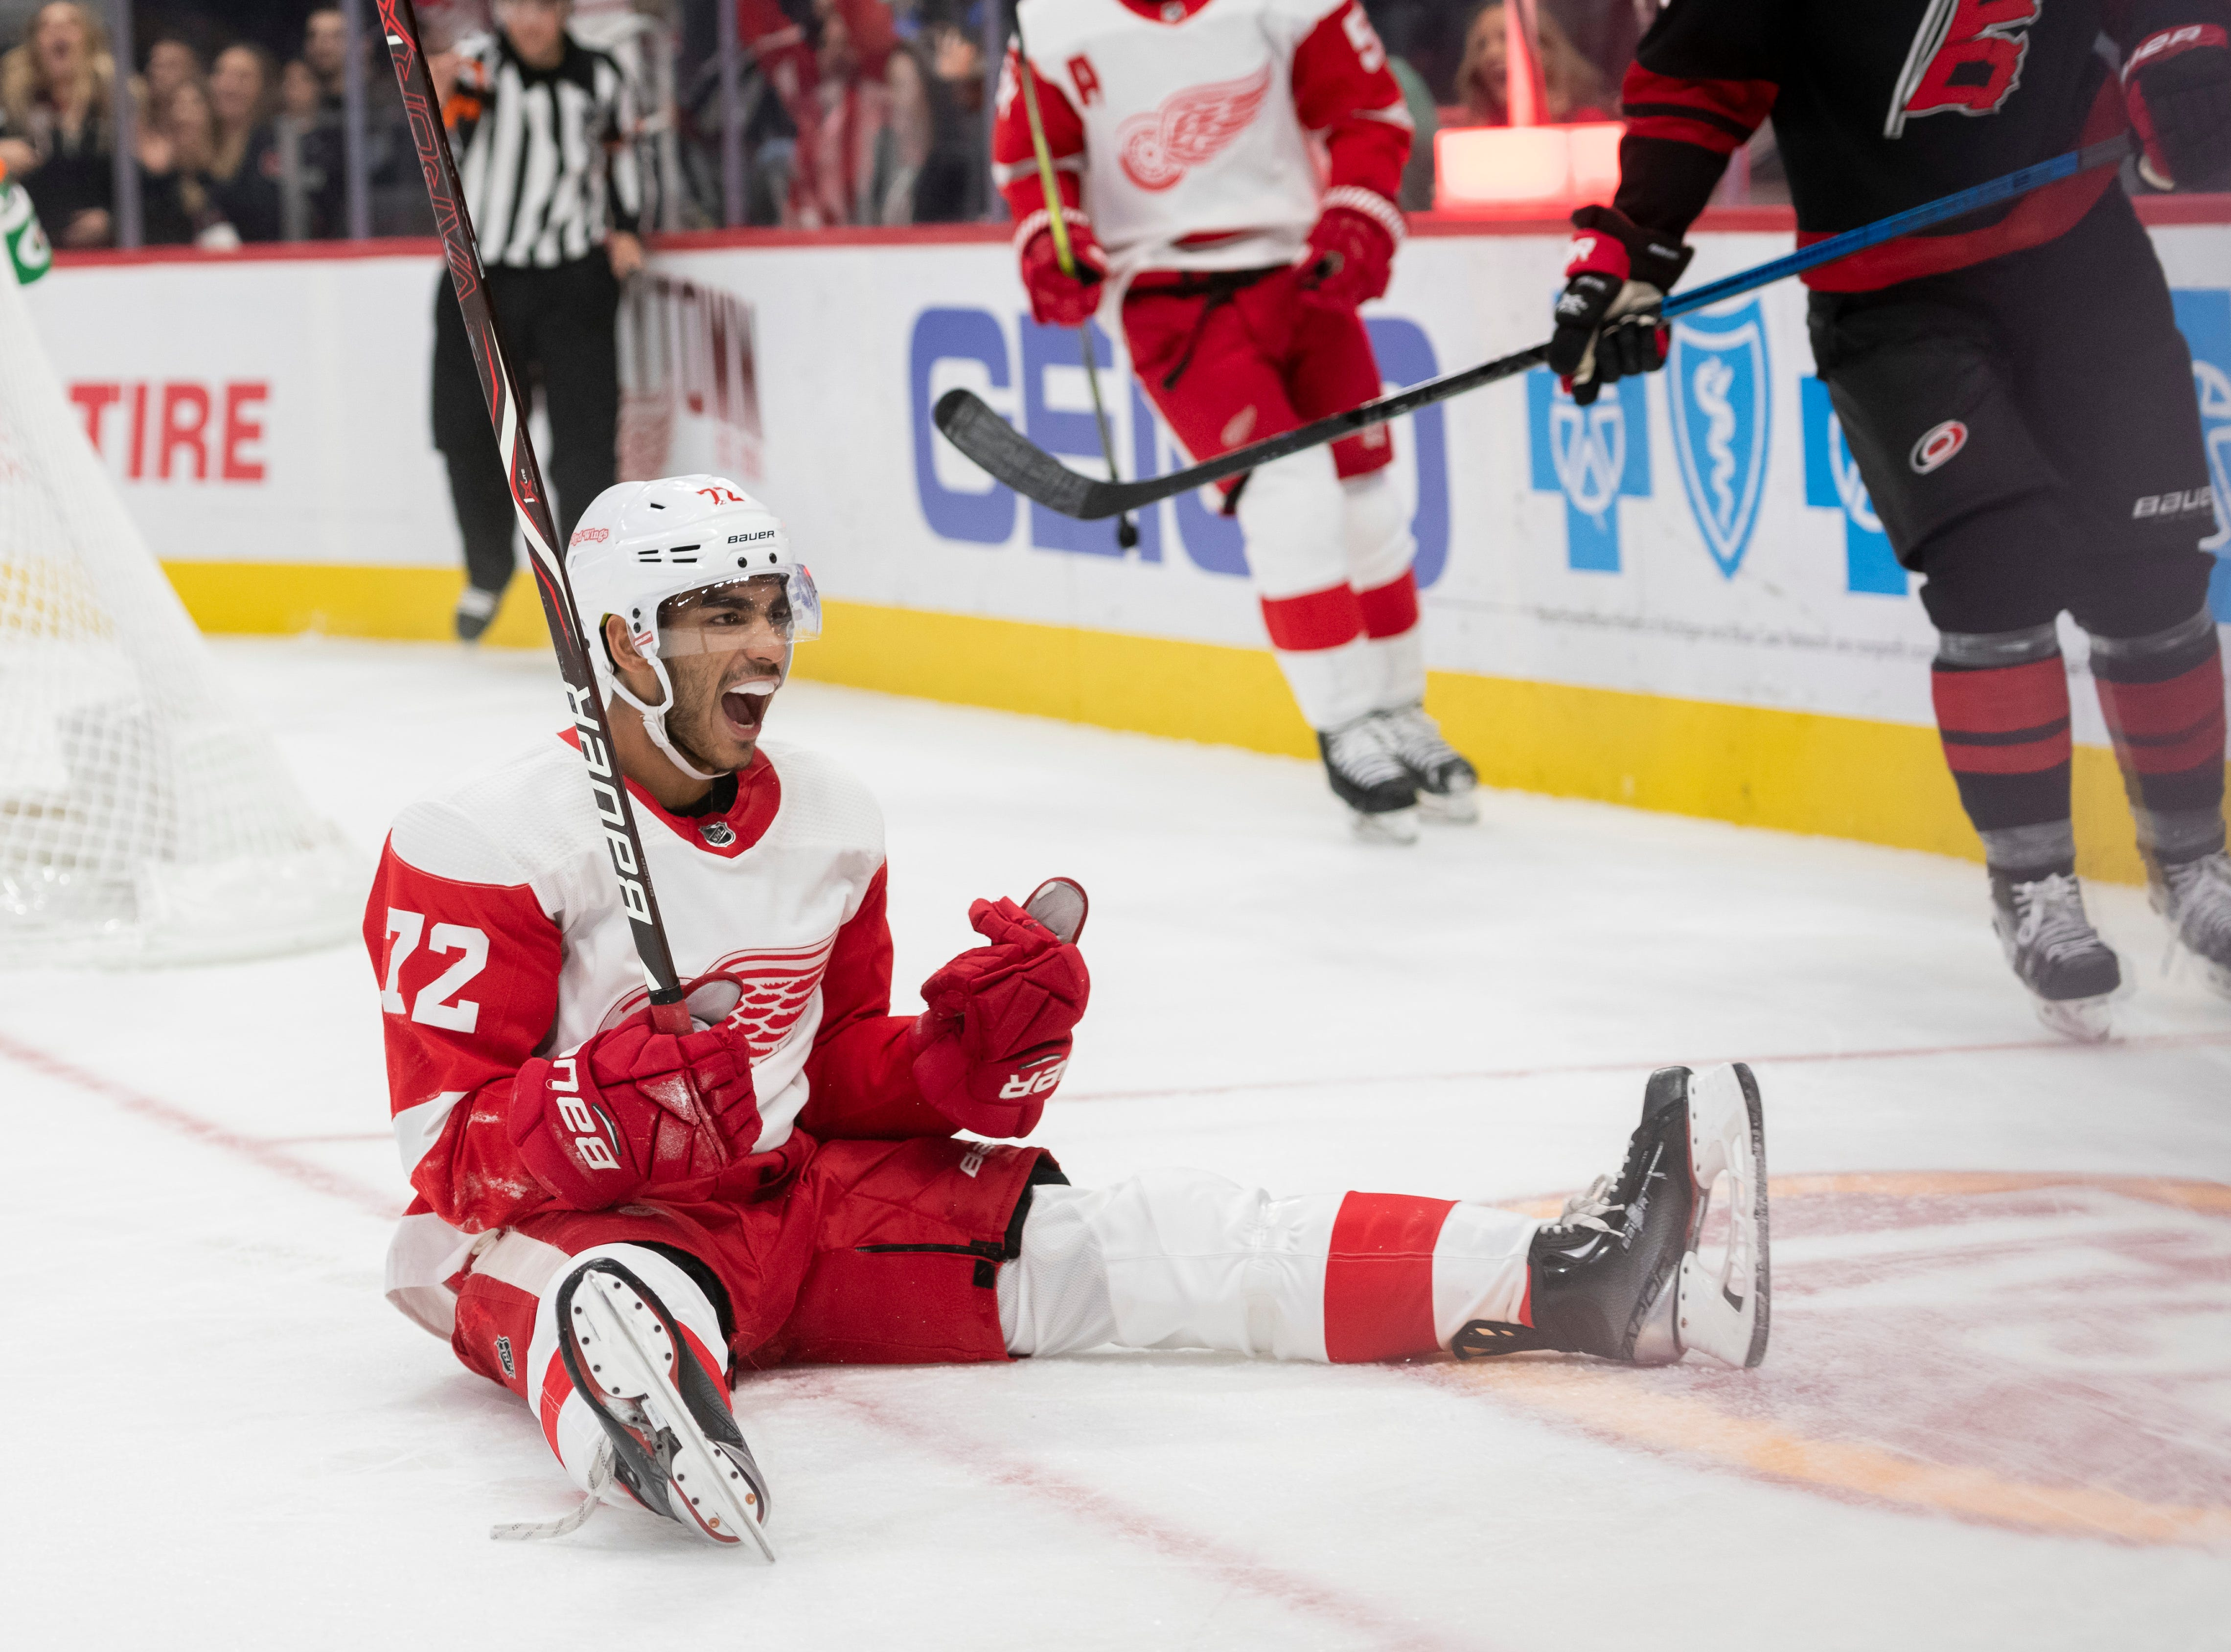 Detroit center Andreas Athanasiou celebrates after scoring on Carolina goaltender Petr Mrazek in the third period.              Photos are of the Detroit Red Wings vs. the Carolina Hurricanes, at Little Caesars Arena, in Detroit, October 22, 2018.  (David Guralnick / The Detroit News)